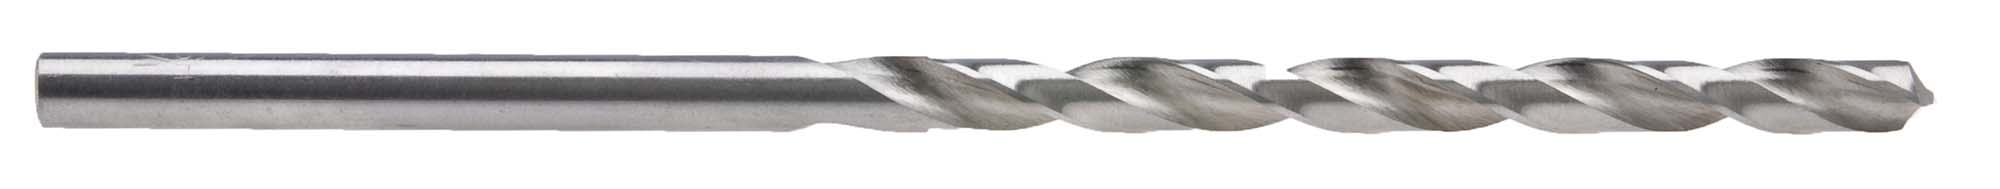 "K (.281"") ""Taper Length"" Long Straight Shank Drill Bit, High Speed Steel"